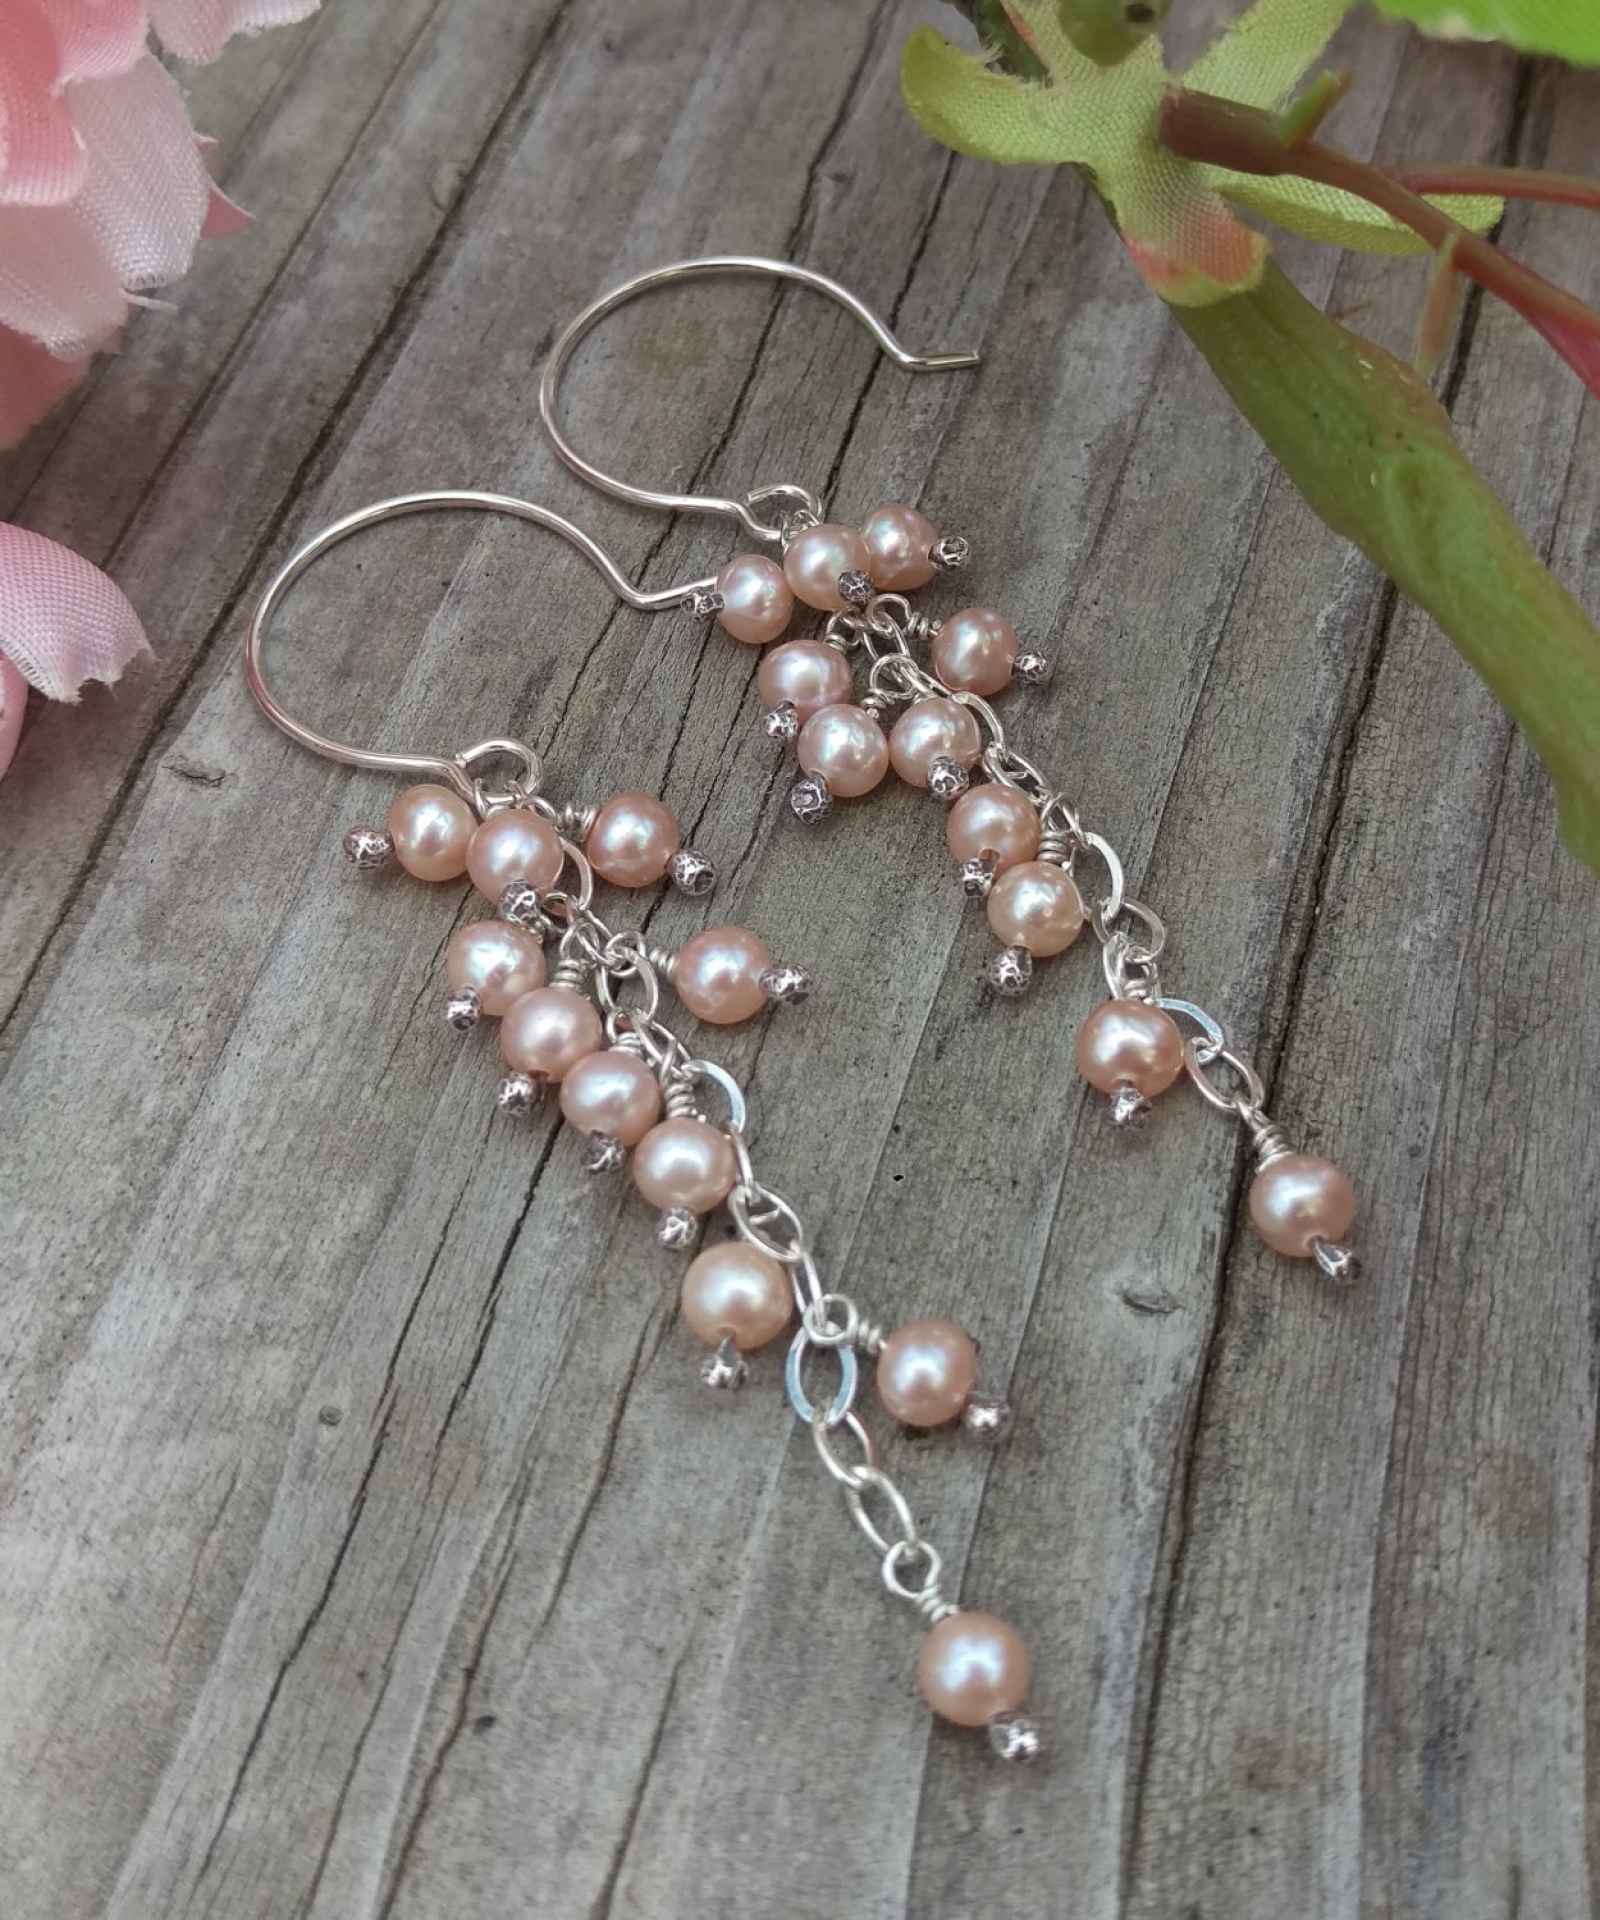 Cascade Pearl Earrings Pink Freshwater Charms On Sterling Silver